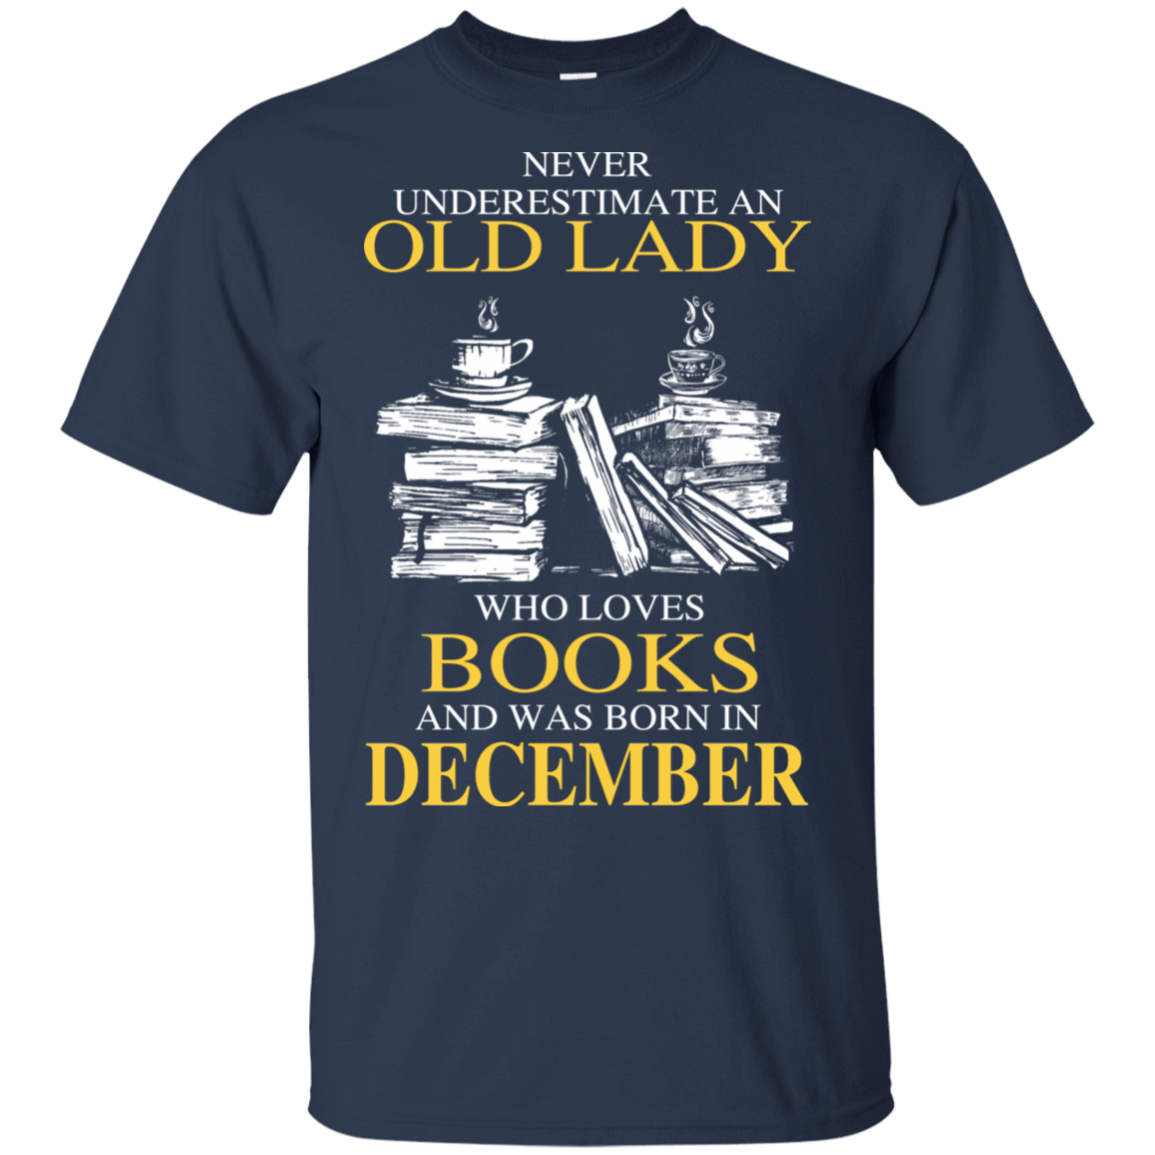 Never Underestimate An Old Lady Who Loves Books And Was Born In December T-Shirts, Hoodies 22-111-78318920-250 - Tee Ript